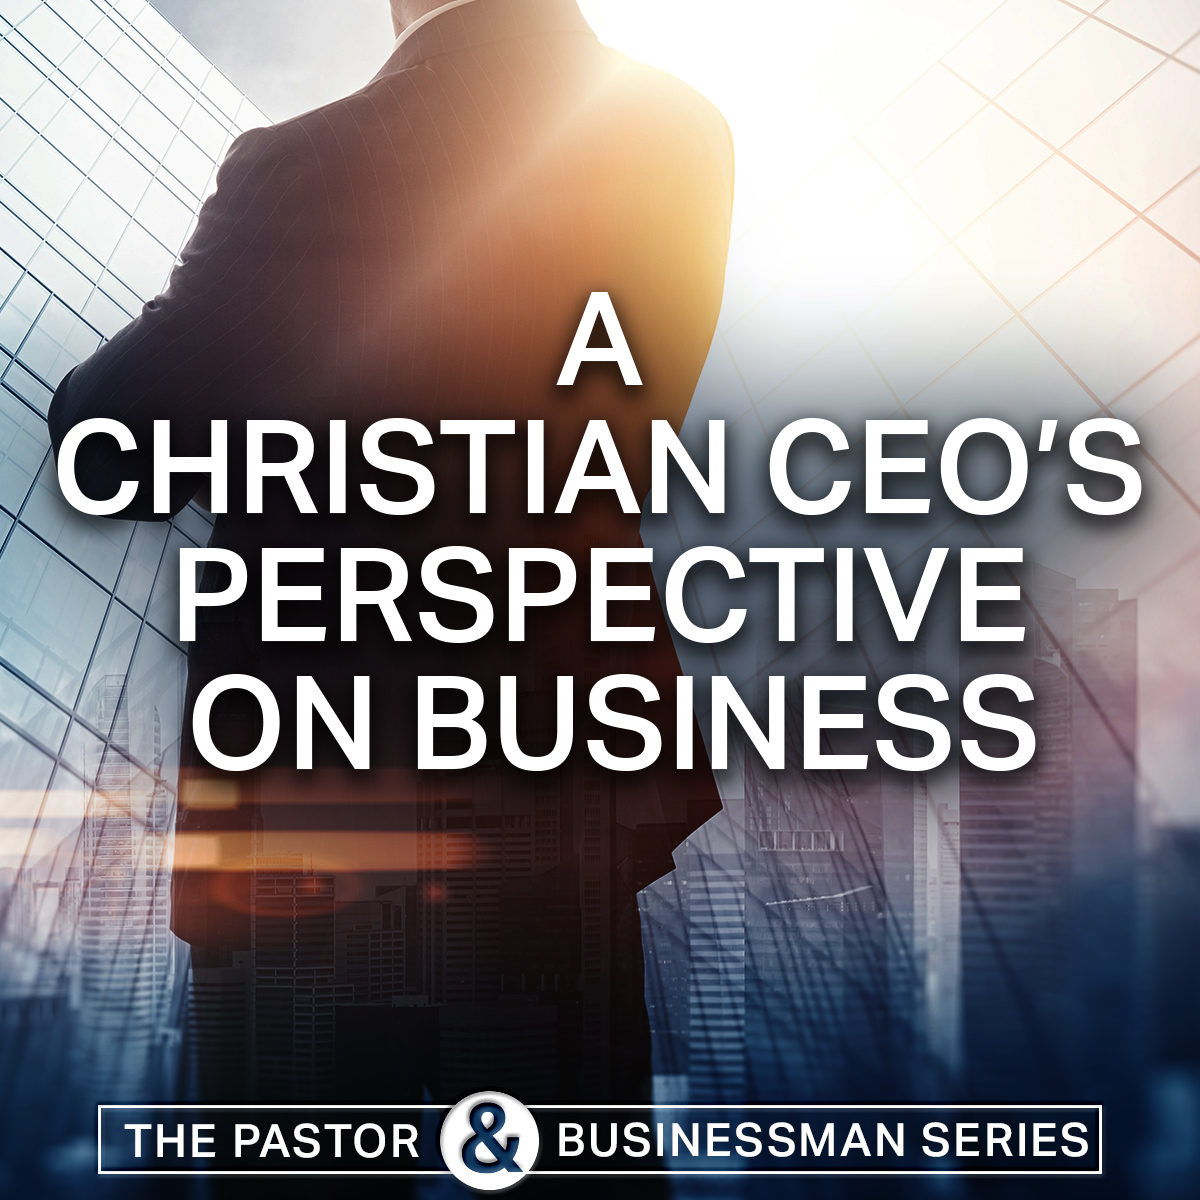 A Christian CEO's Perspective on Business